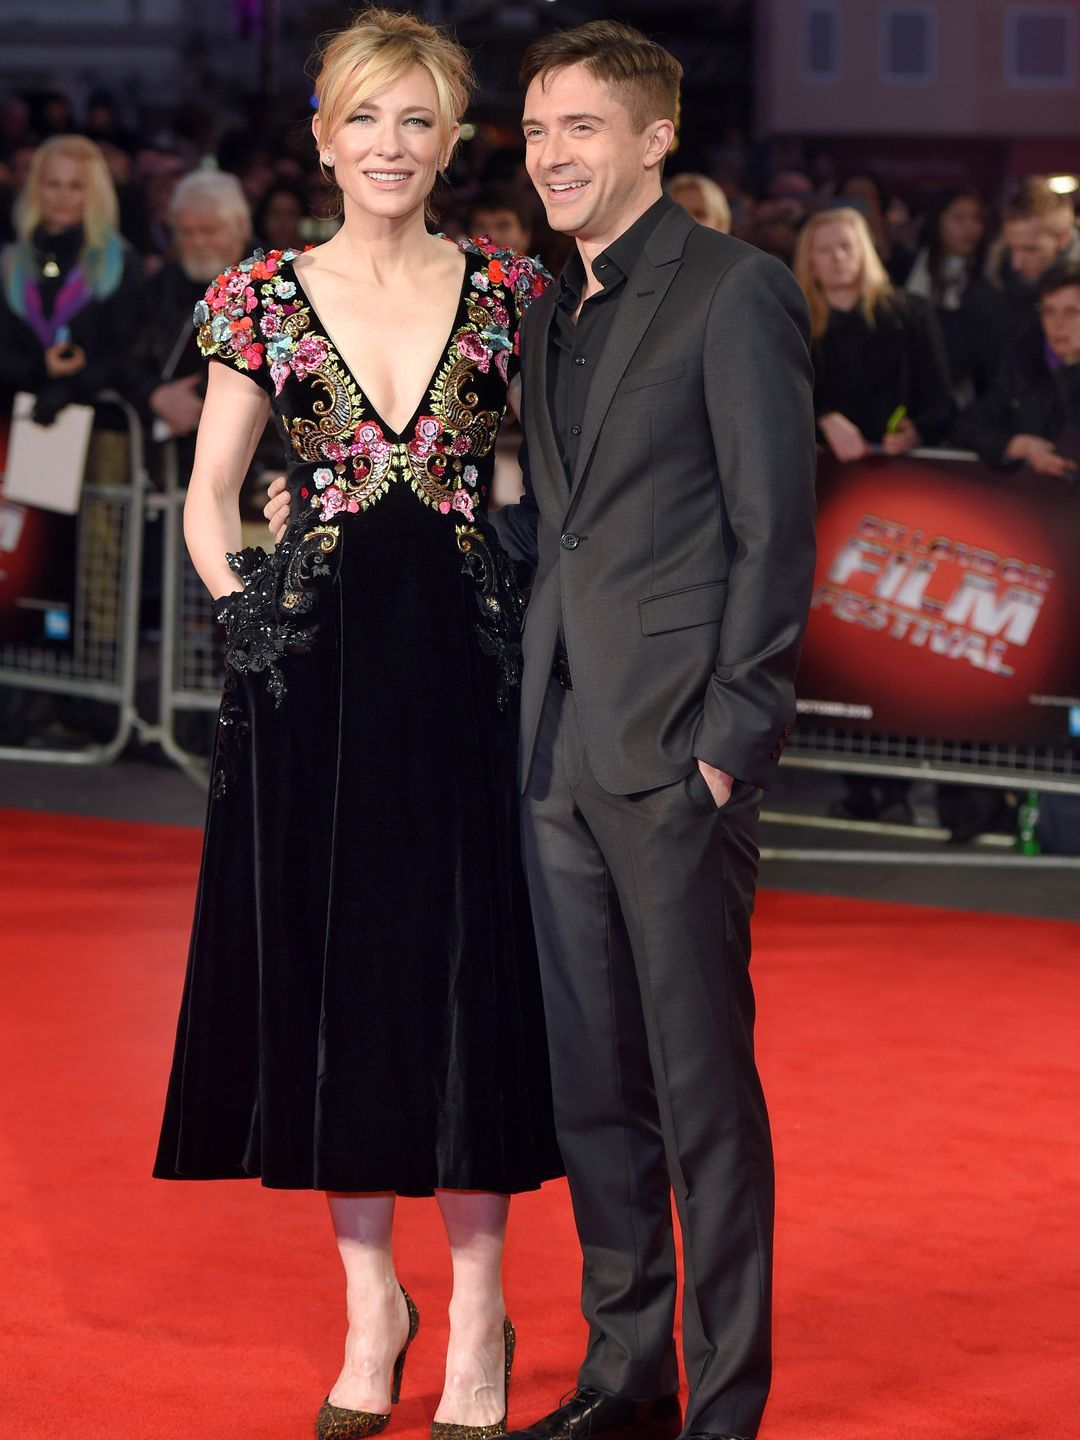 Cate Blanchett and Topher Grace attend a screening of 'Truth' during the BFI London Film Festival at Odeon Leicester Square on Oct. 17, 2015, in London.   Karwai Tang, WireImage